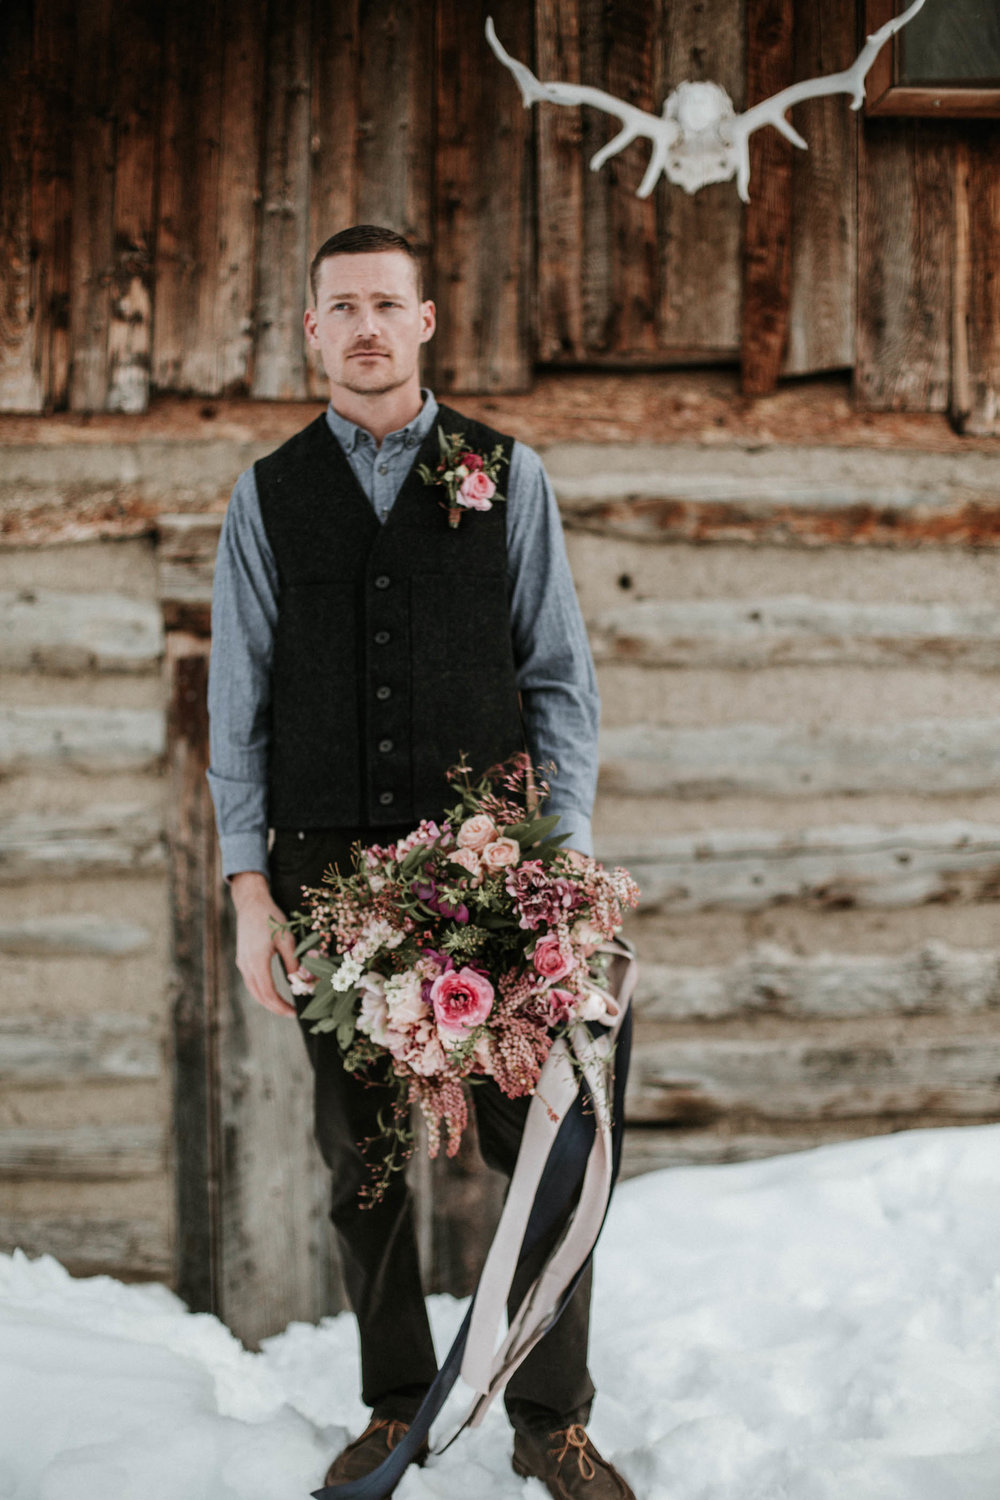 sunvalleywinterwedding_christinemariephoto-1.jpg